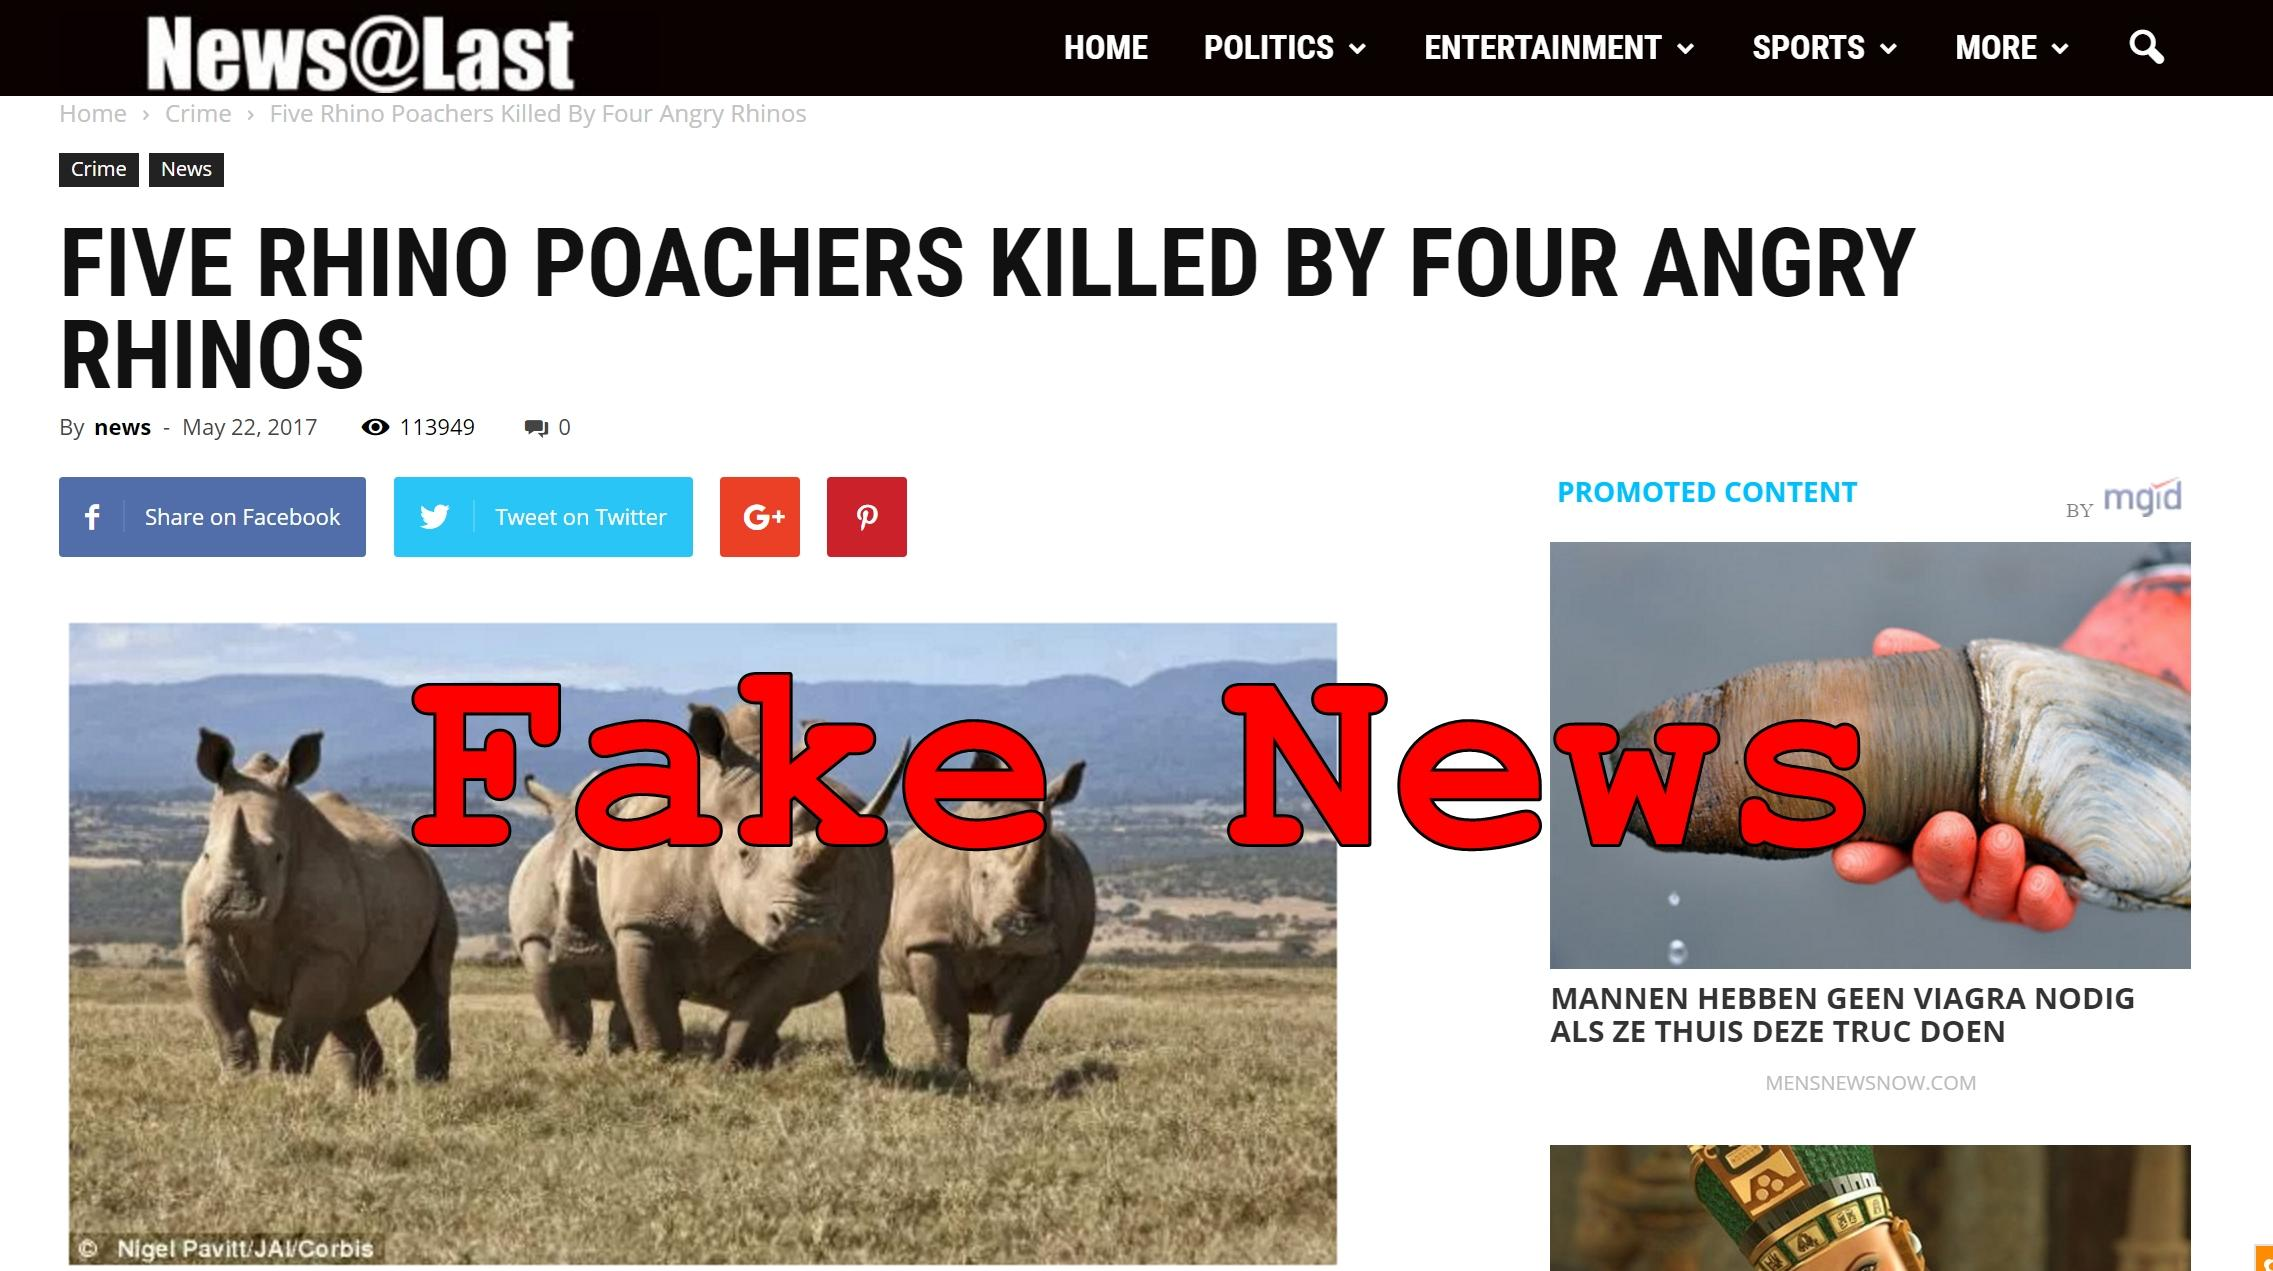 Fake News: Five Rhino Poachers NOT Killed By Four Angry Rhinos